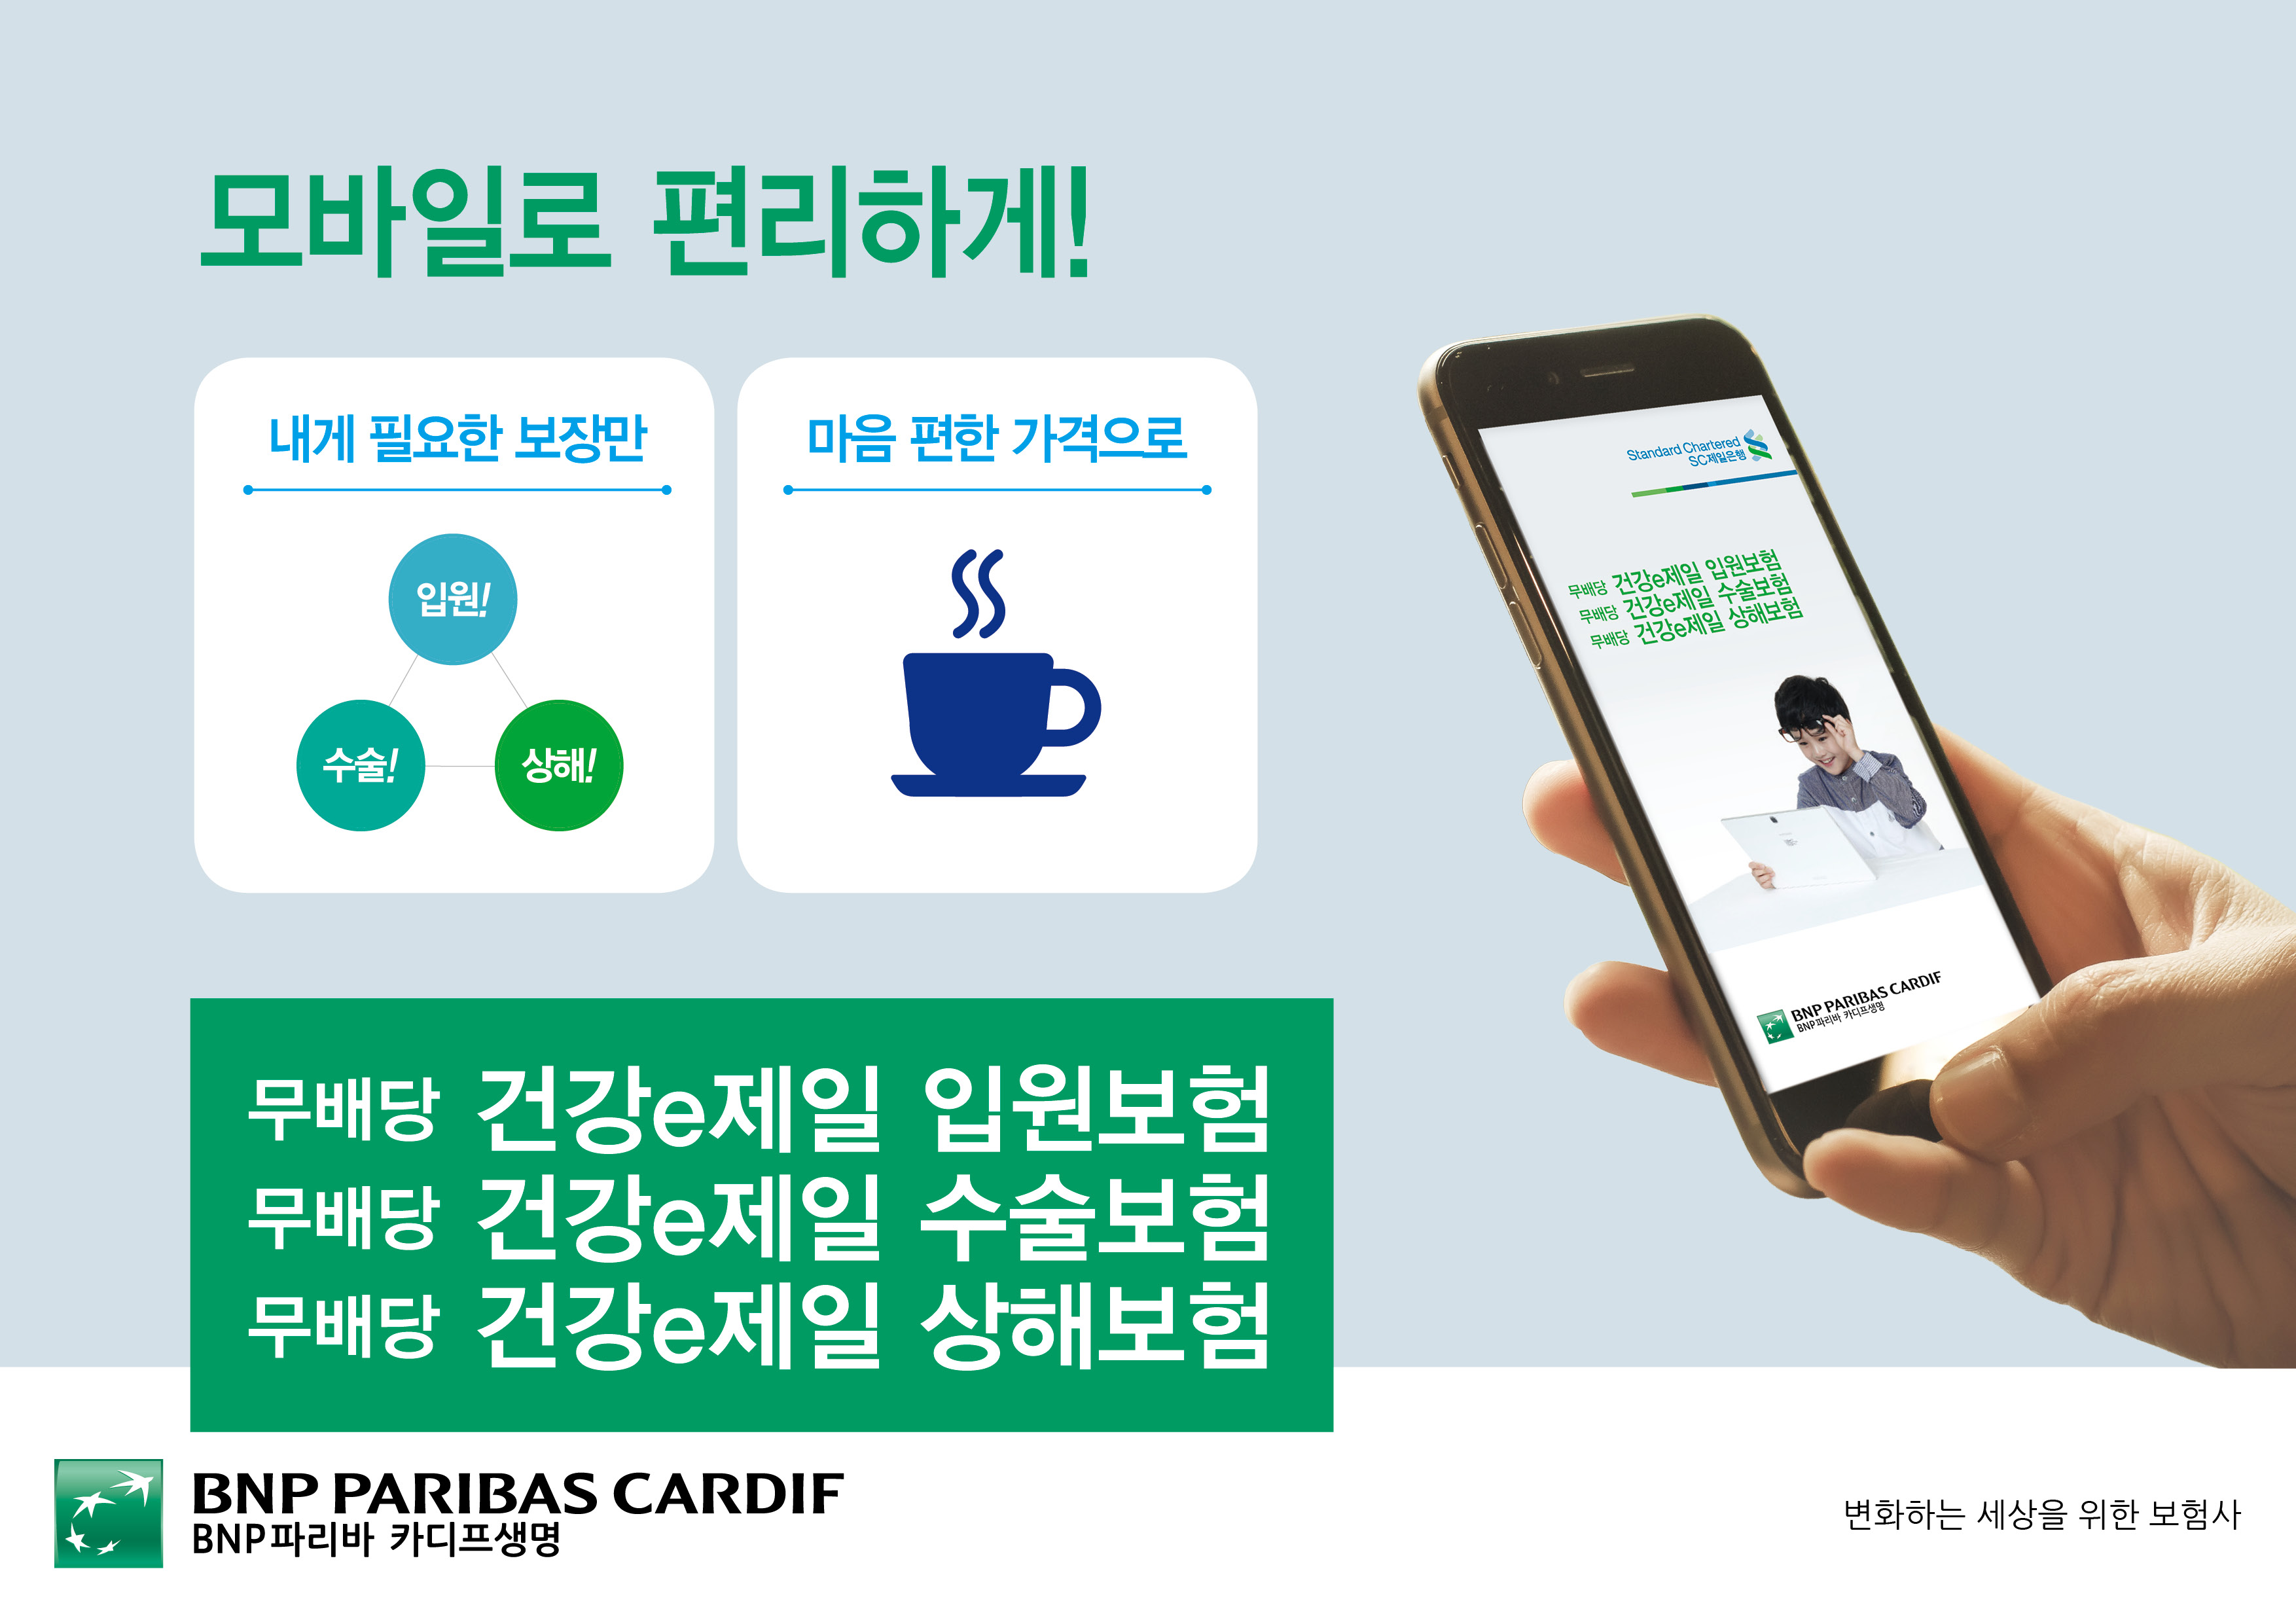 bnp paribas cardif life insurance launches 3 types of np health